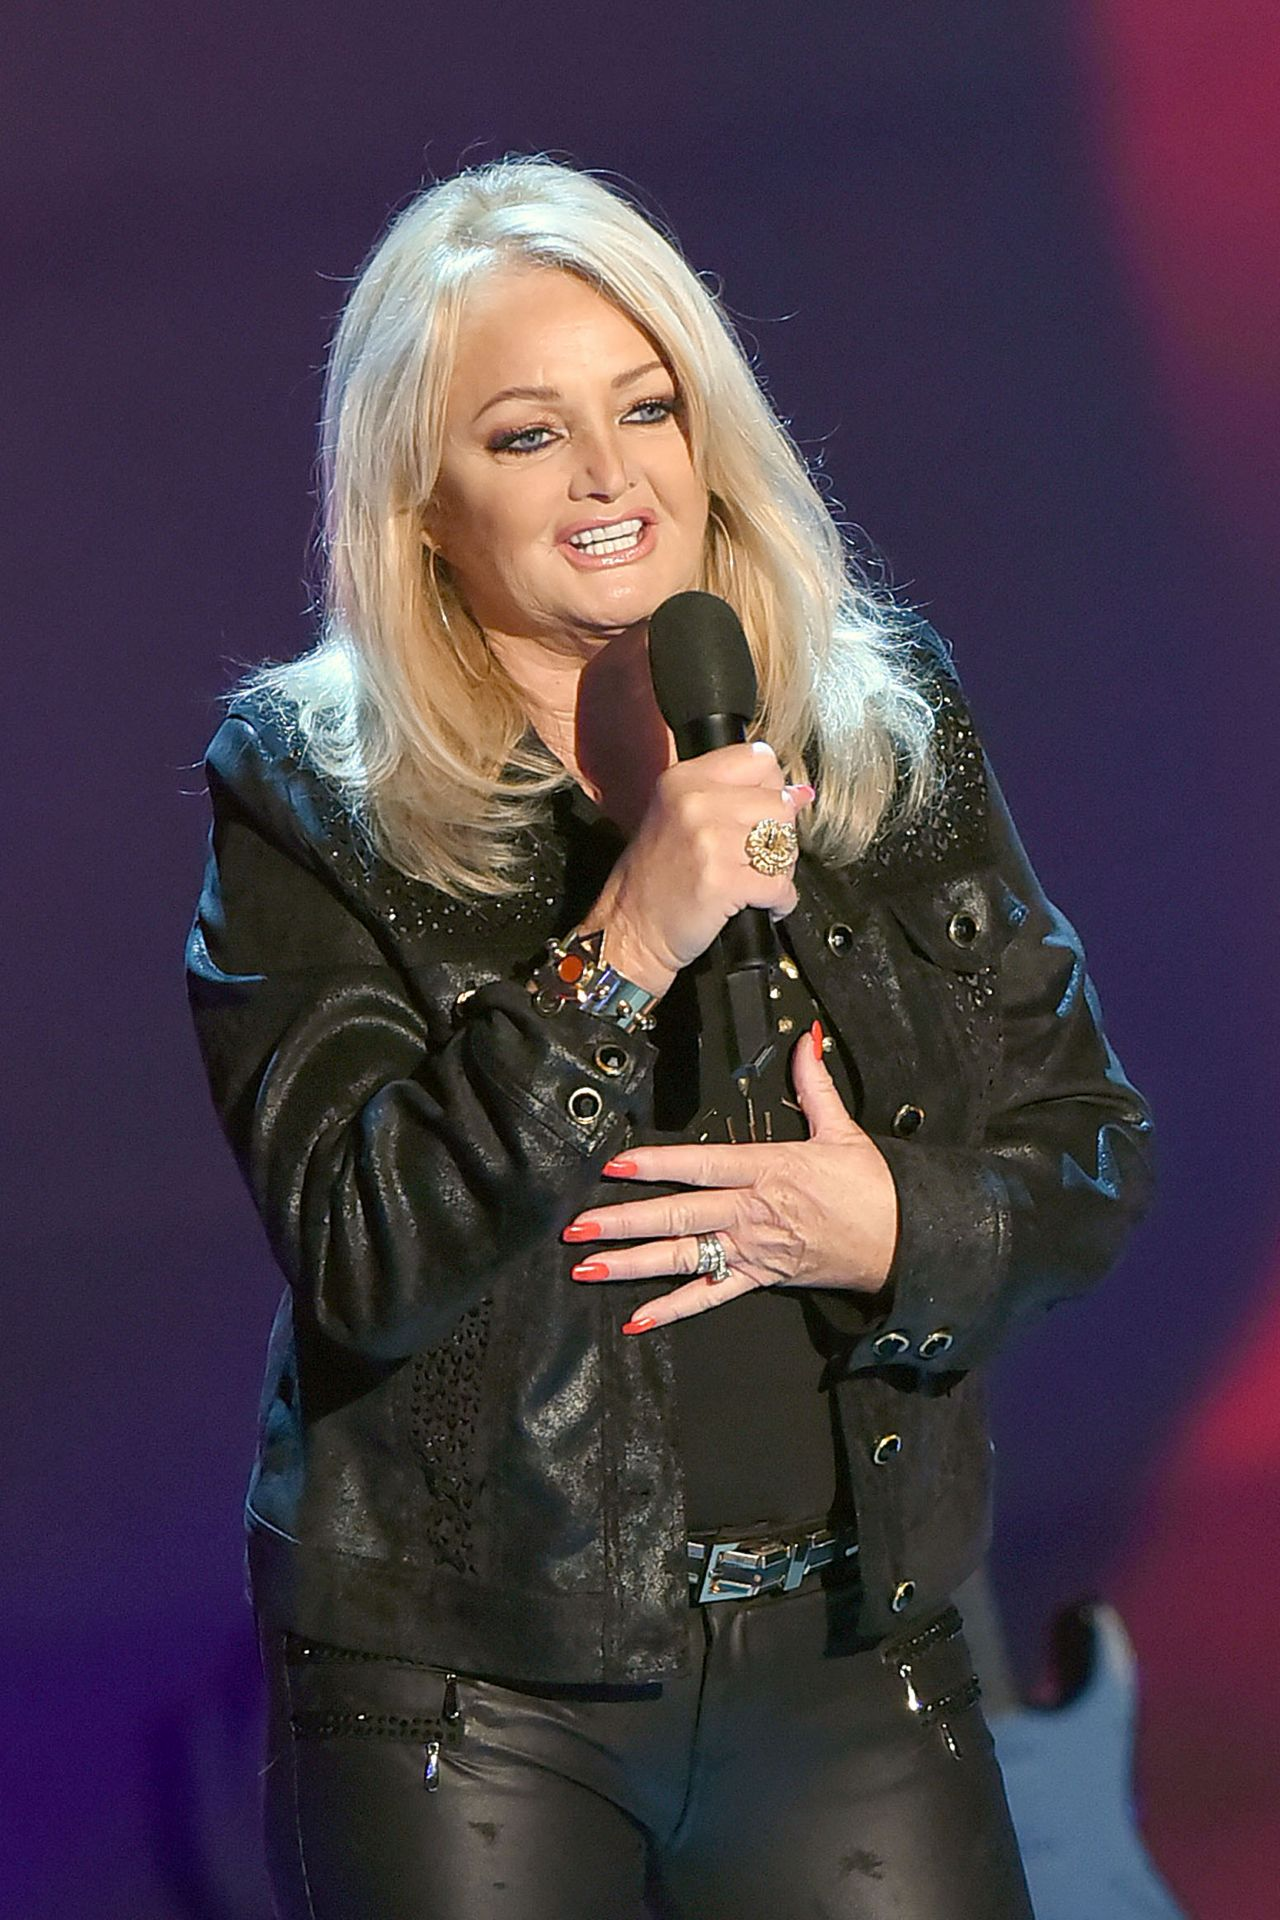 bonnie tyler - photo #1